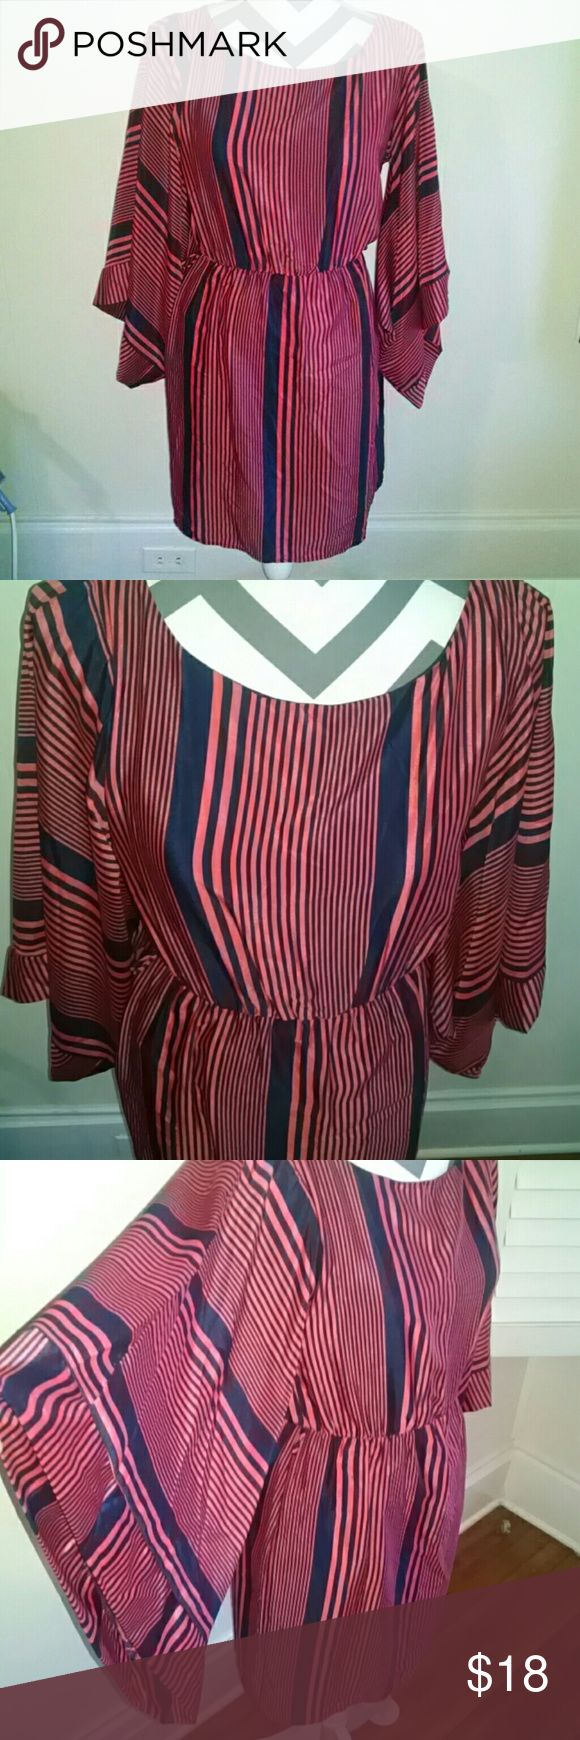 NWT Pink Owl Batwing Open back Dress This dress is the coolest! The batwing type sleeves & open oval back really make this dress special. Beautiful blue navy & orange stripe pattern. Belt loops on each side if you wanted to add a belt. Has blue lining. Unfortunately it doesn't fit me otherwise I'd definitely keep it! New with tags! pink owl  Dresses